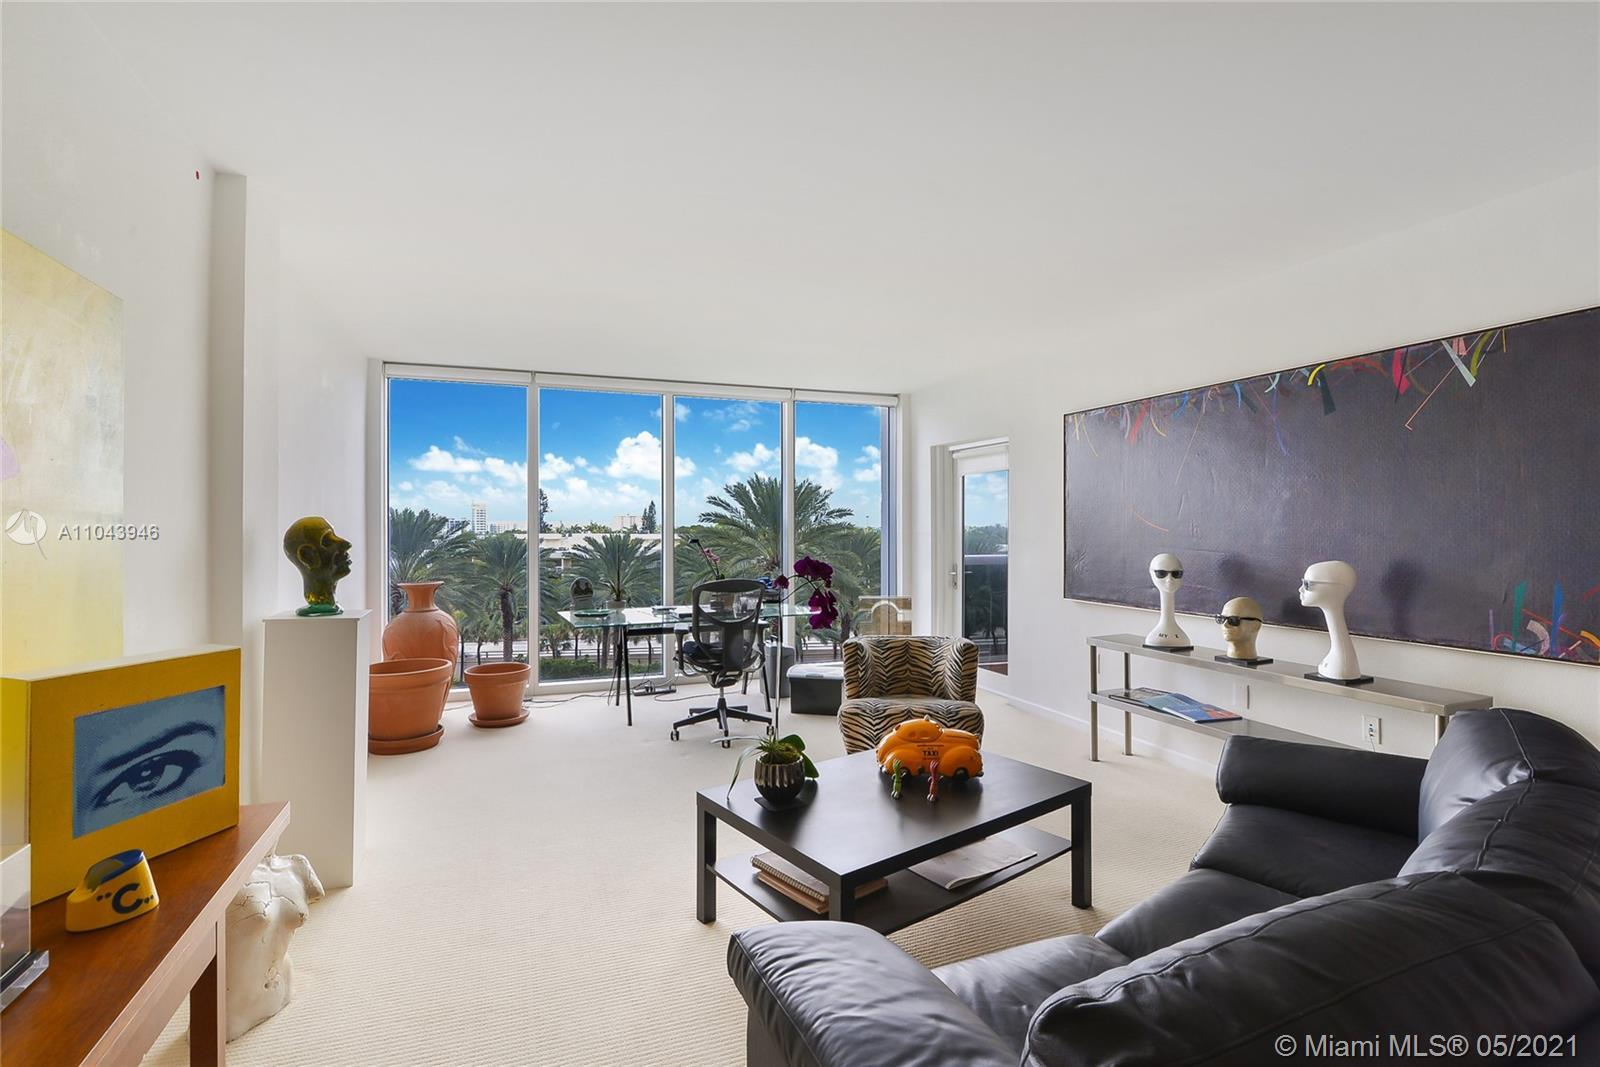 The Harbour House is The Luxury Totally Redone Building in Bal Harbour on the Ocean ! One Bedroom/ 1